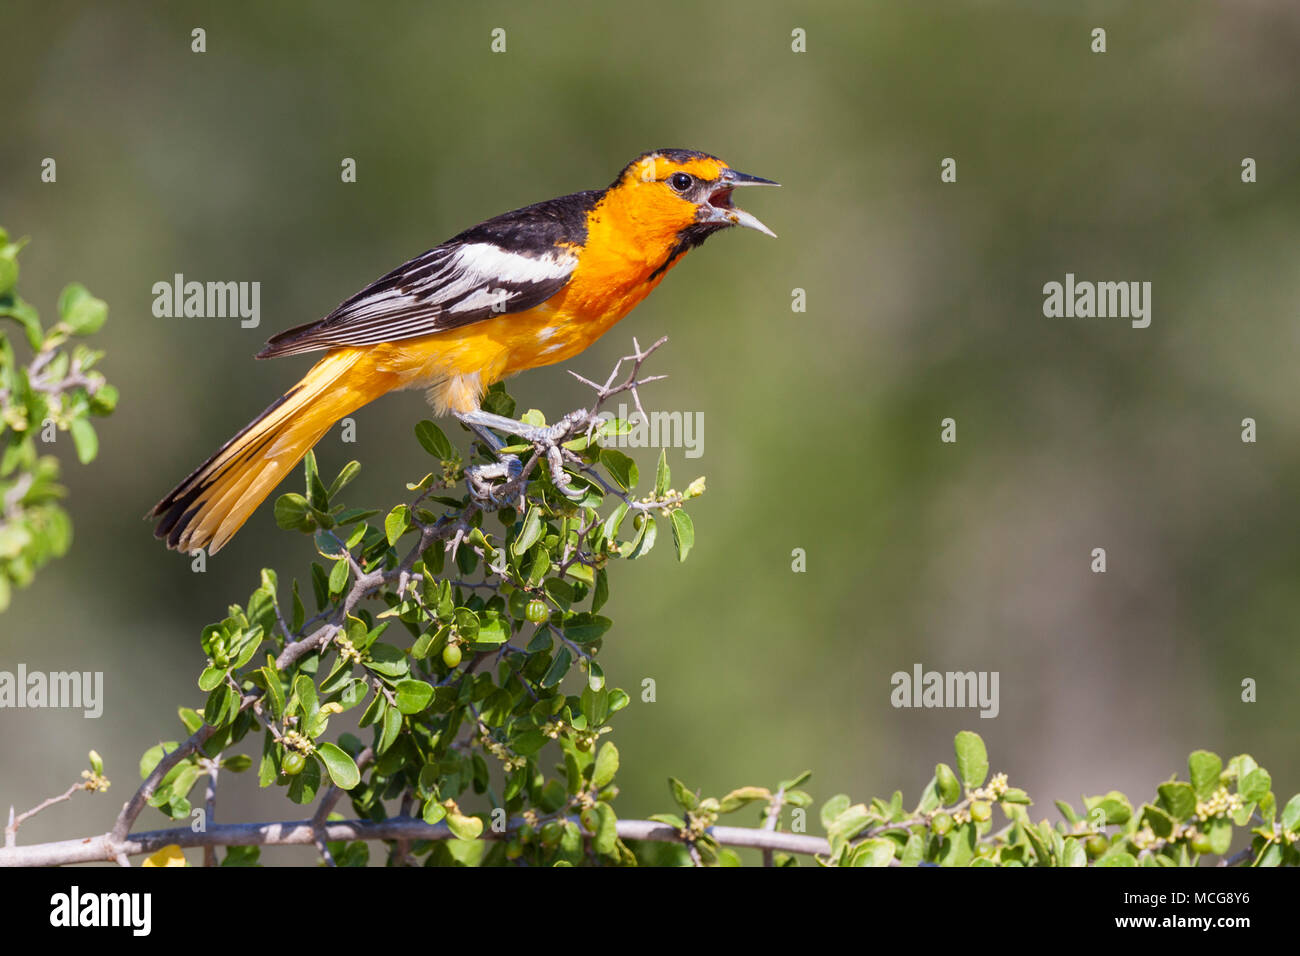 Bullock's Oriole, Icterus bullockii, trying to keep cool during a hot summer on a ranch in South Texas. - Stock Image